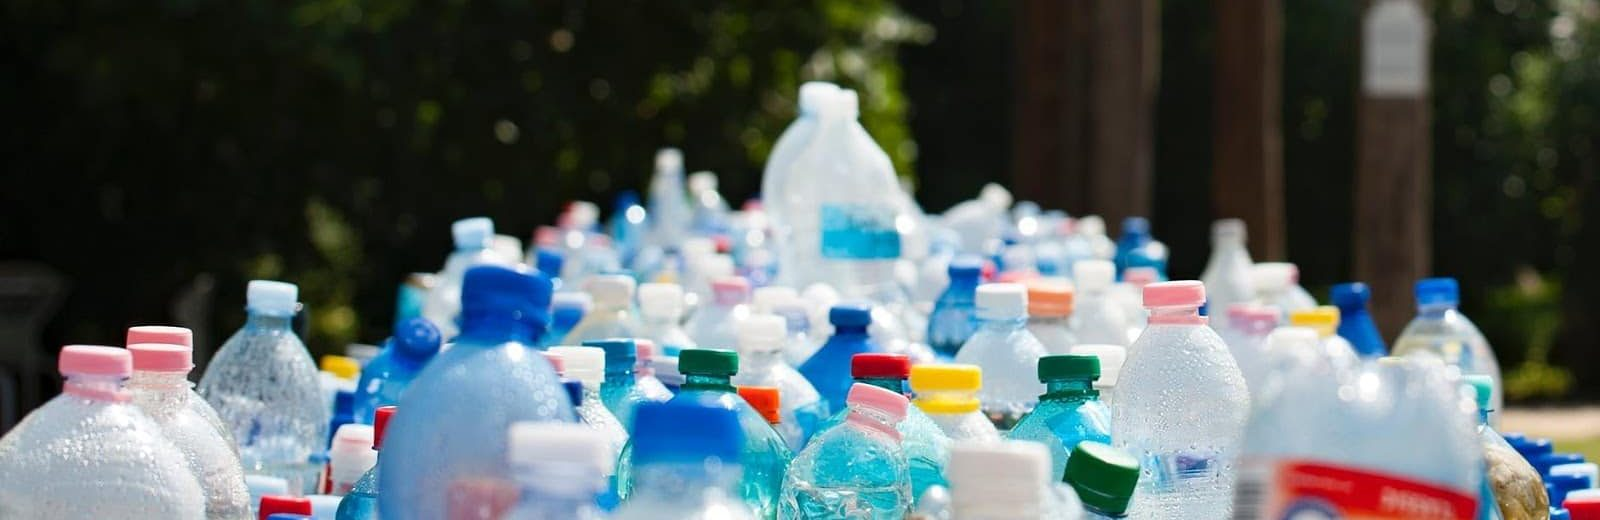 Reduce your plastic waste in the workplace